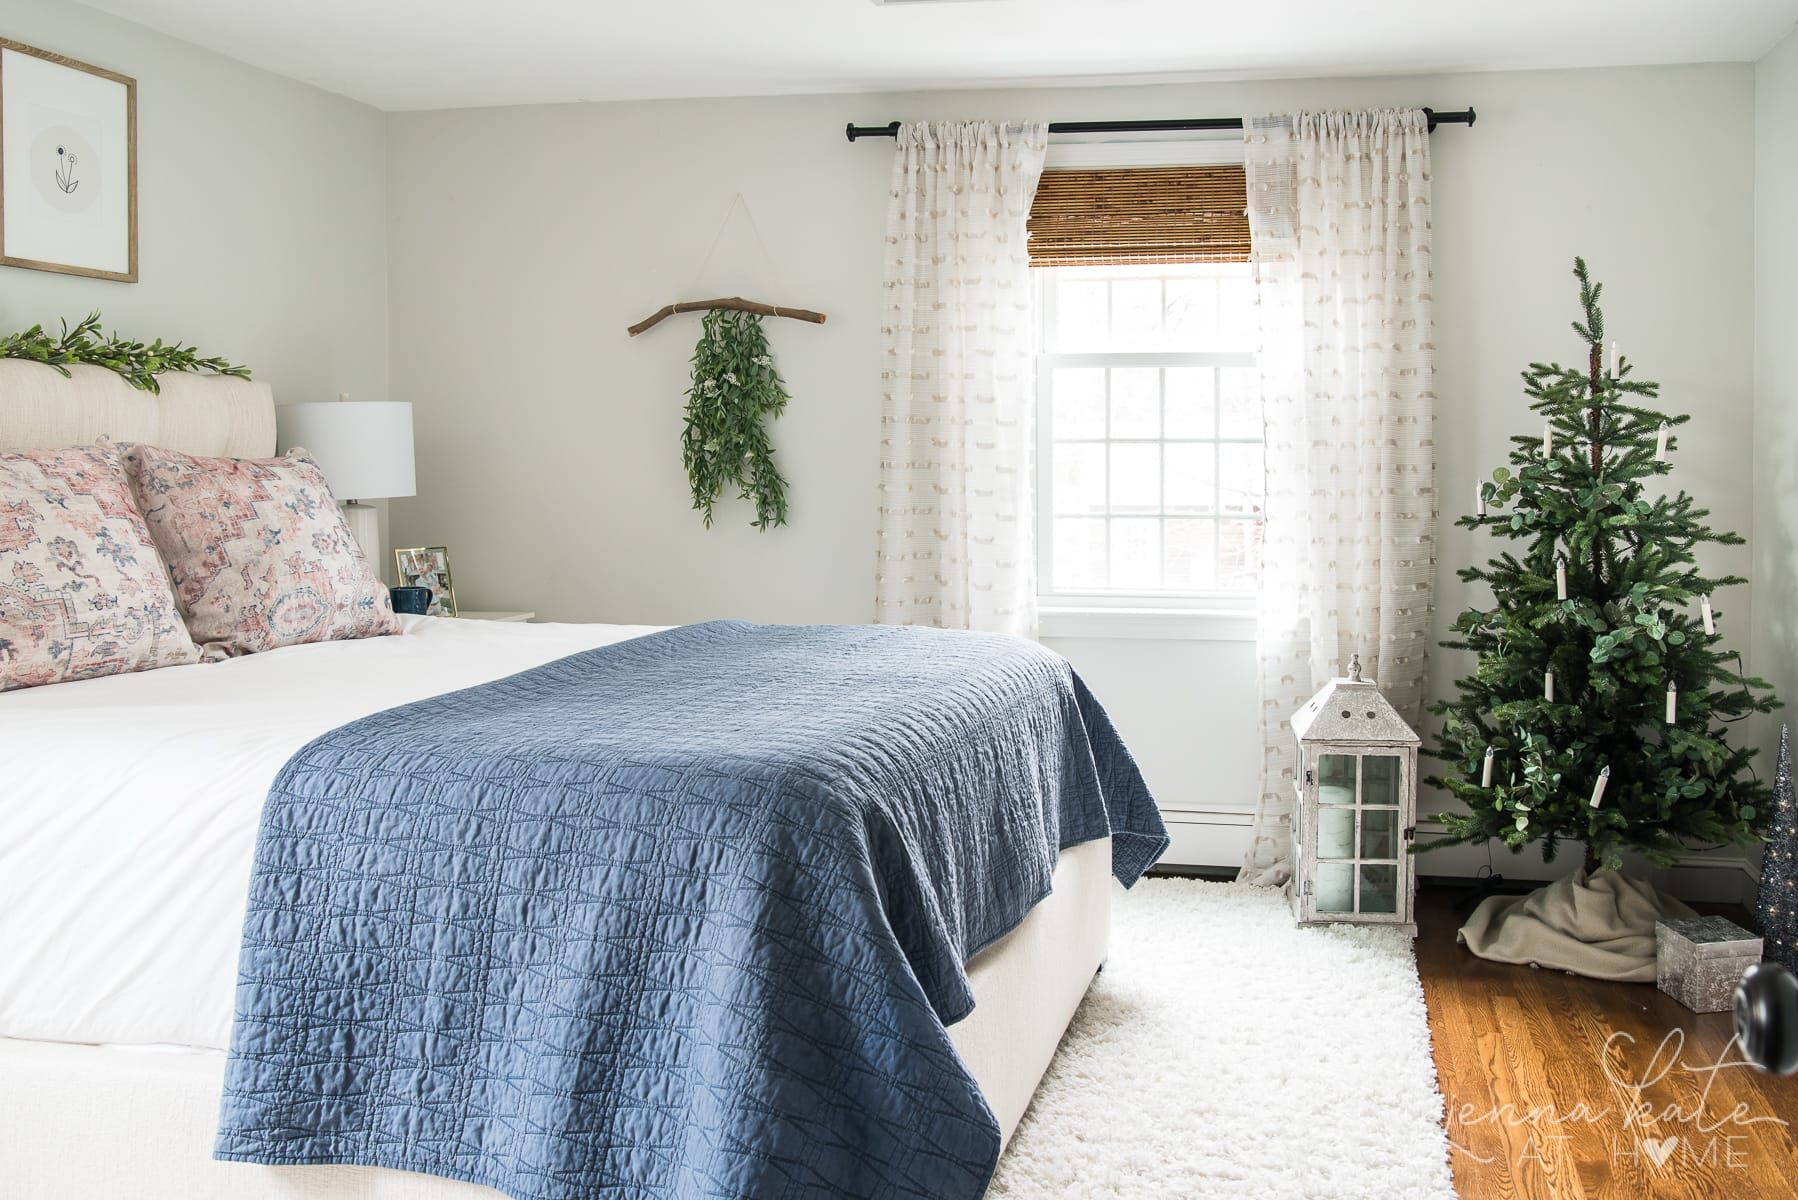 Bedroom with small Christmas tree in the corner